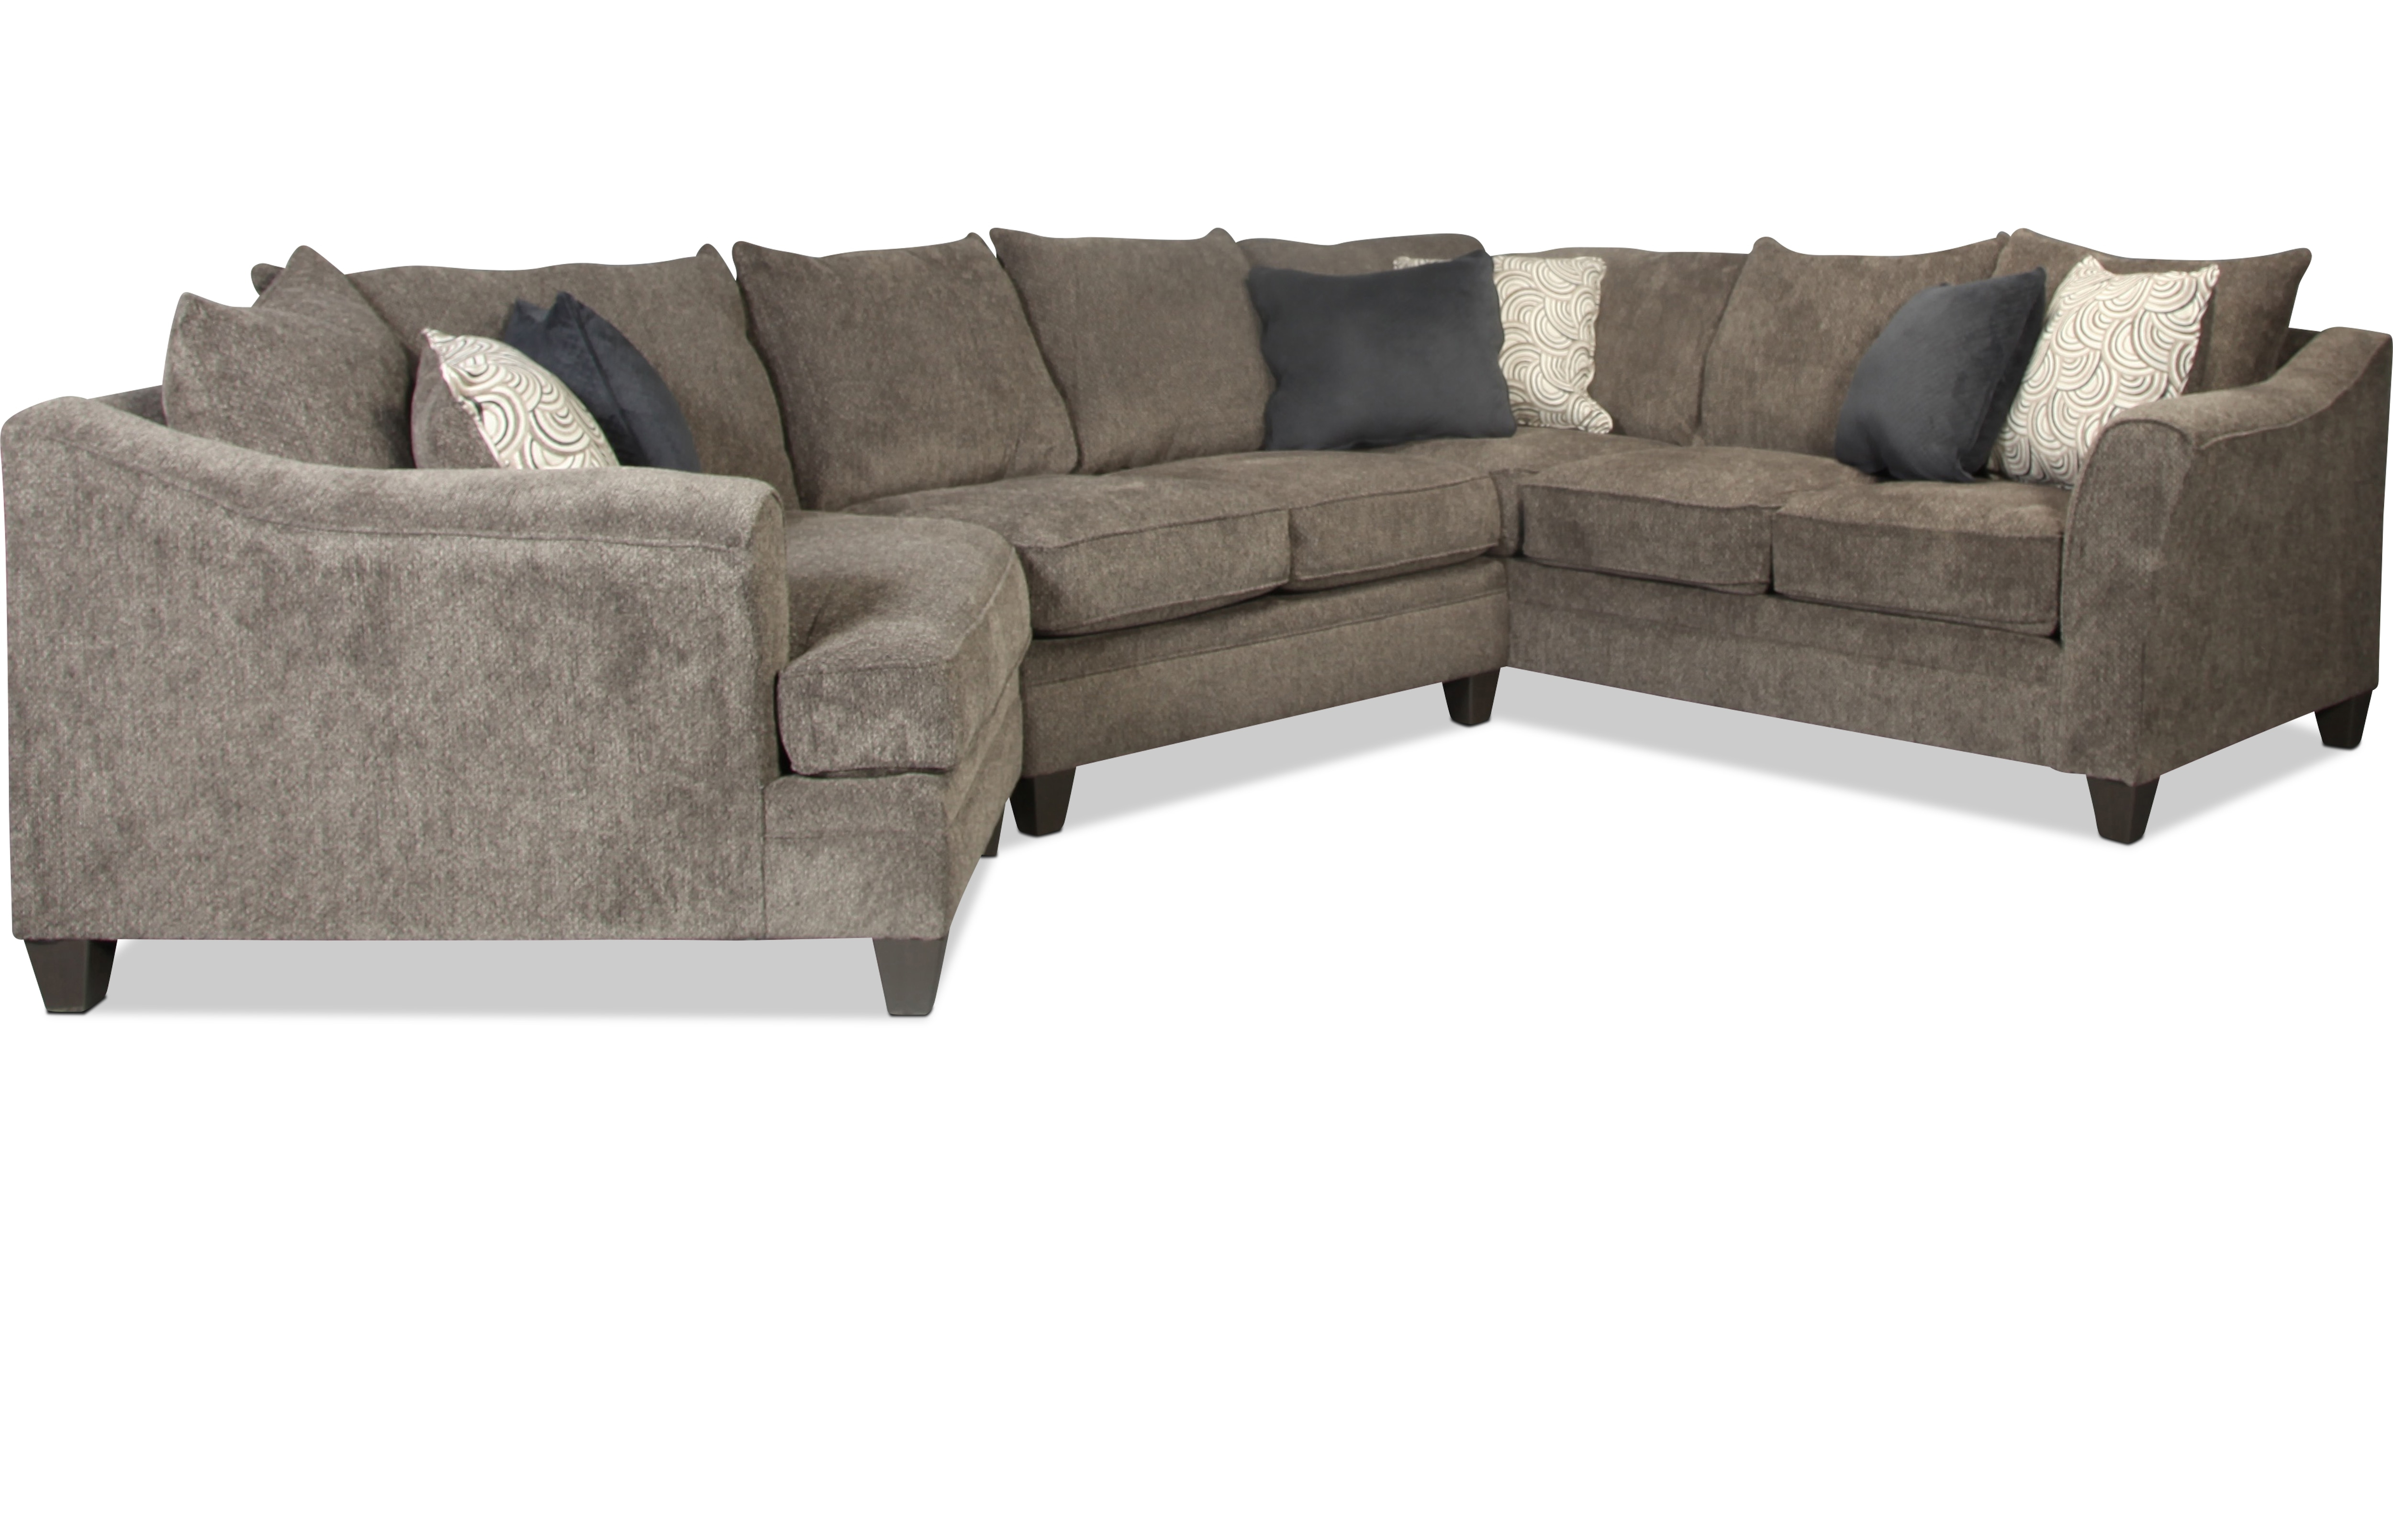 Sectionals | Levin Furniture With Regard To Mansfield Cocoa Leather Sofa Chairs (Image 19 of 25)